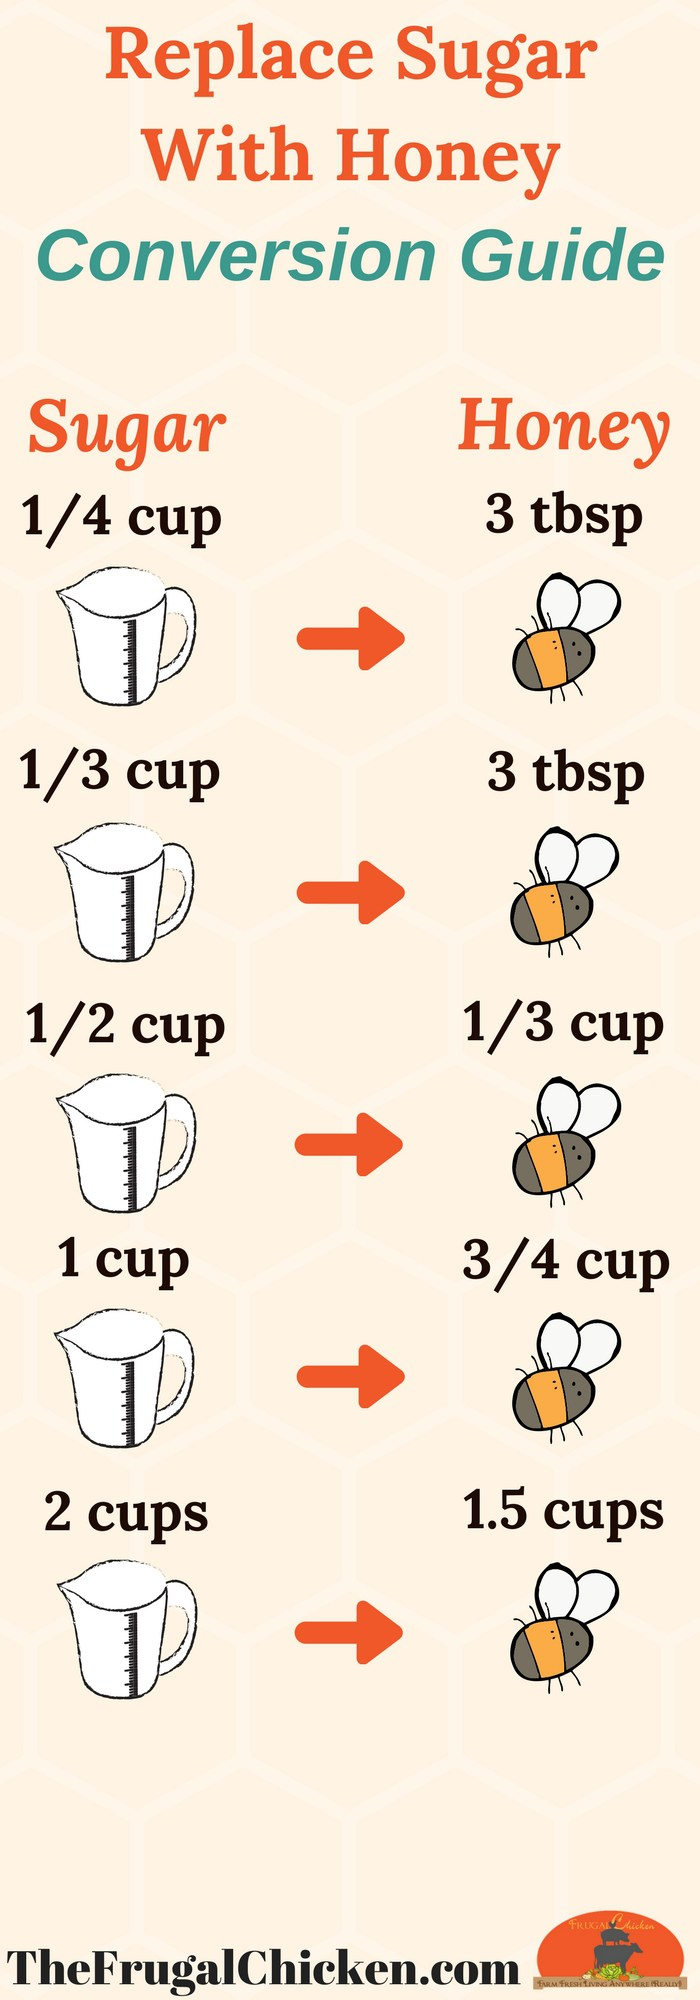 Sugar To Honey: The Conversion Guide Infographic